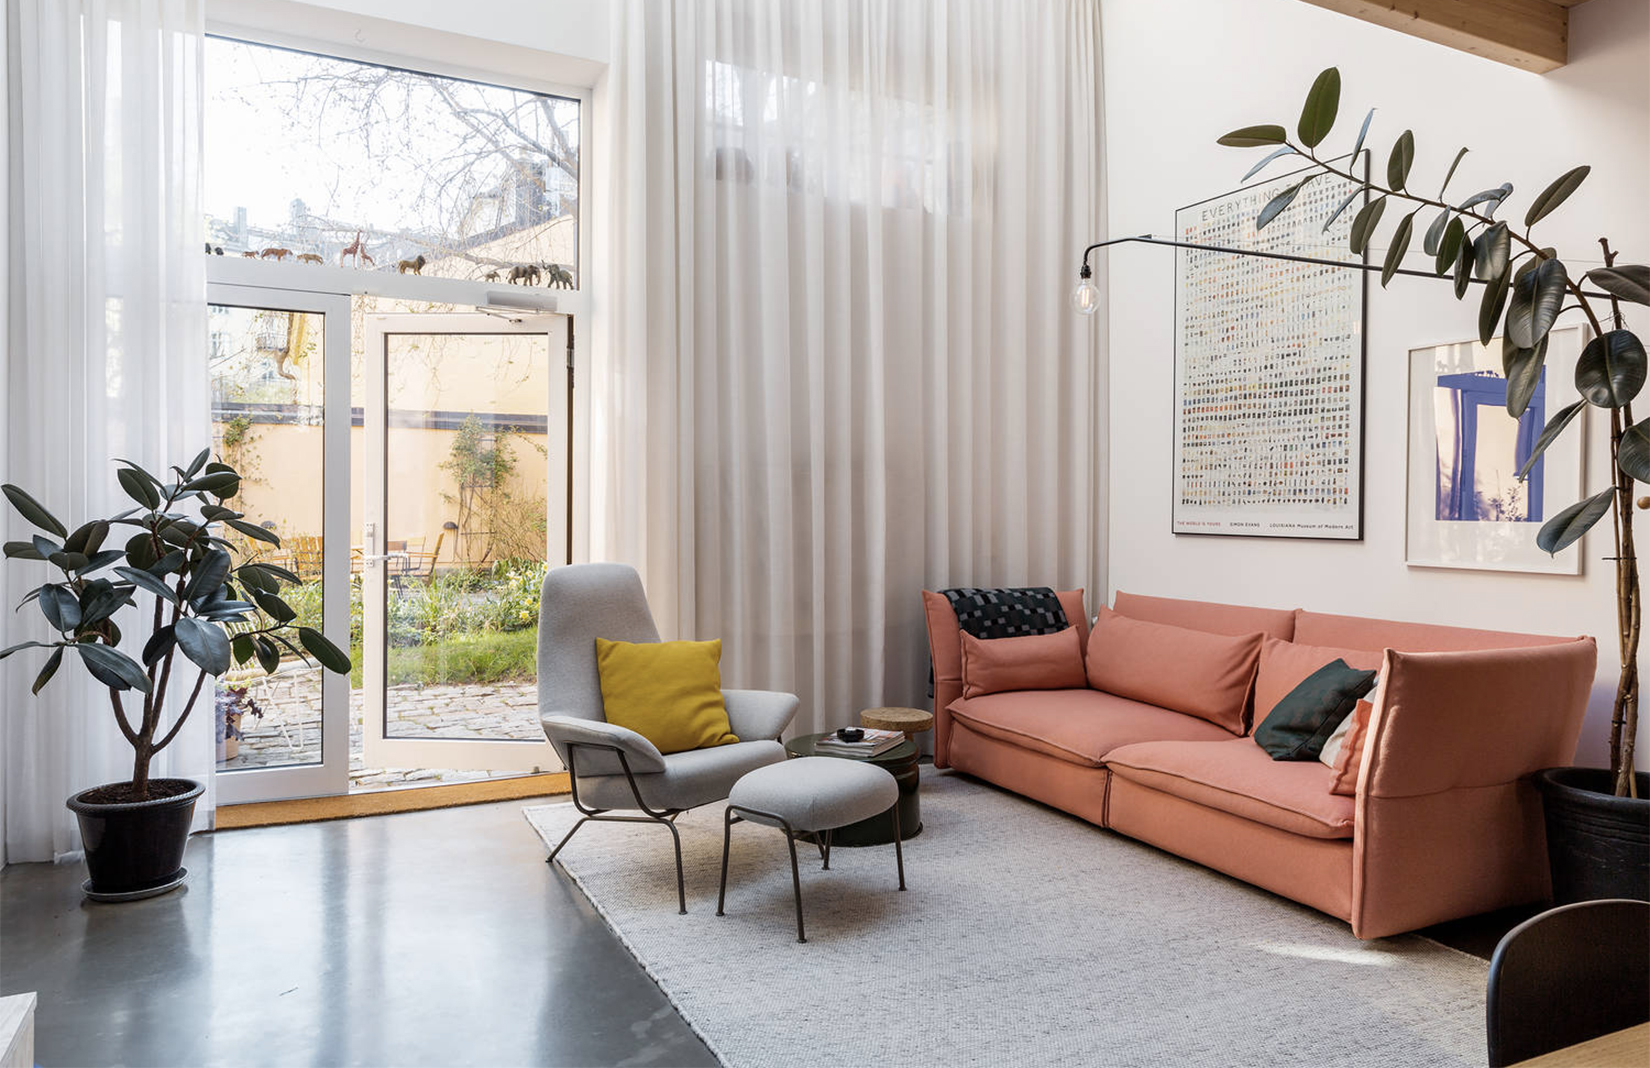 Hem furniture brand founder Petrus Palmér lists his Stockholm home